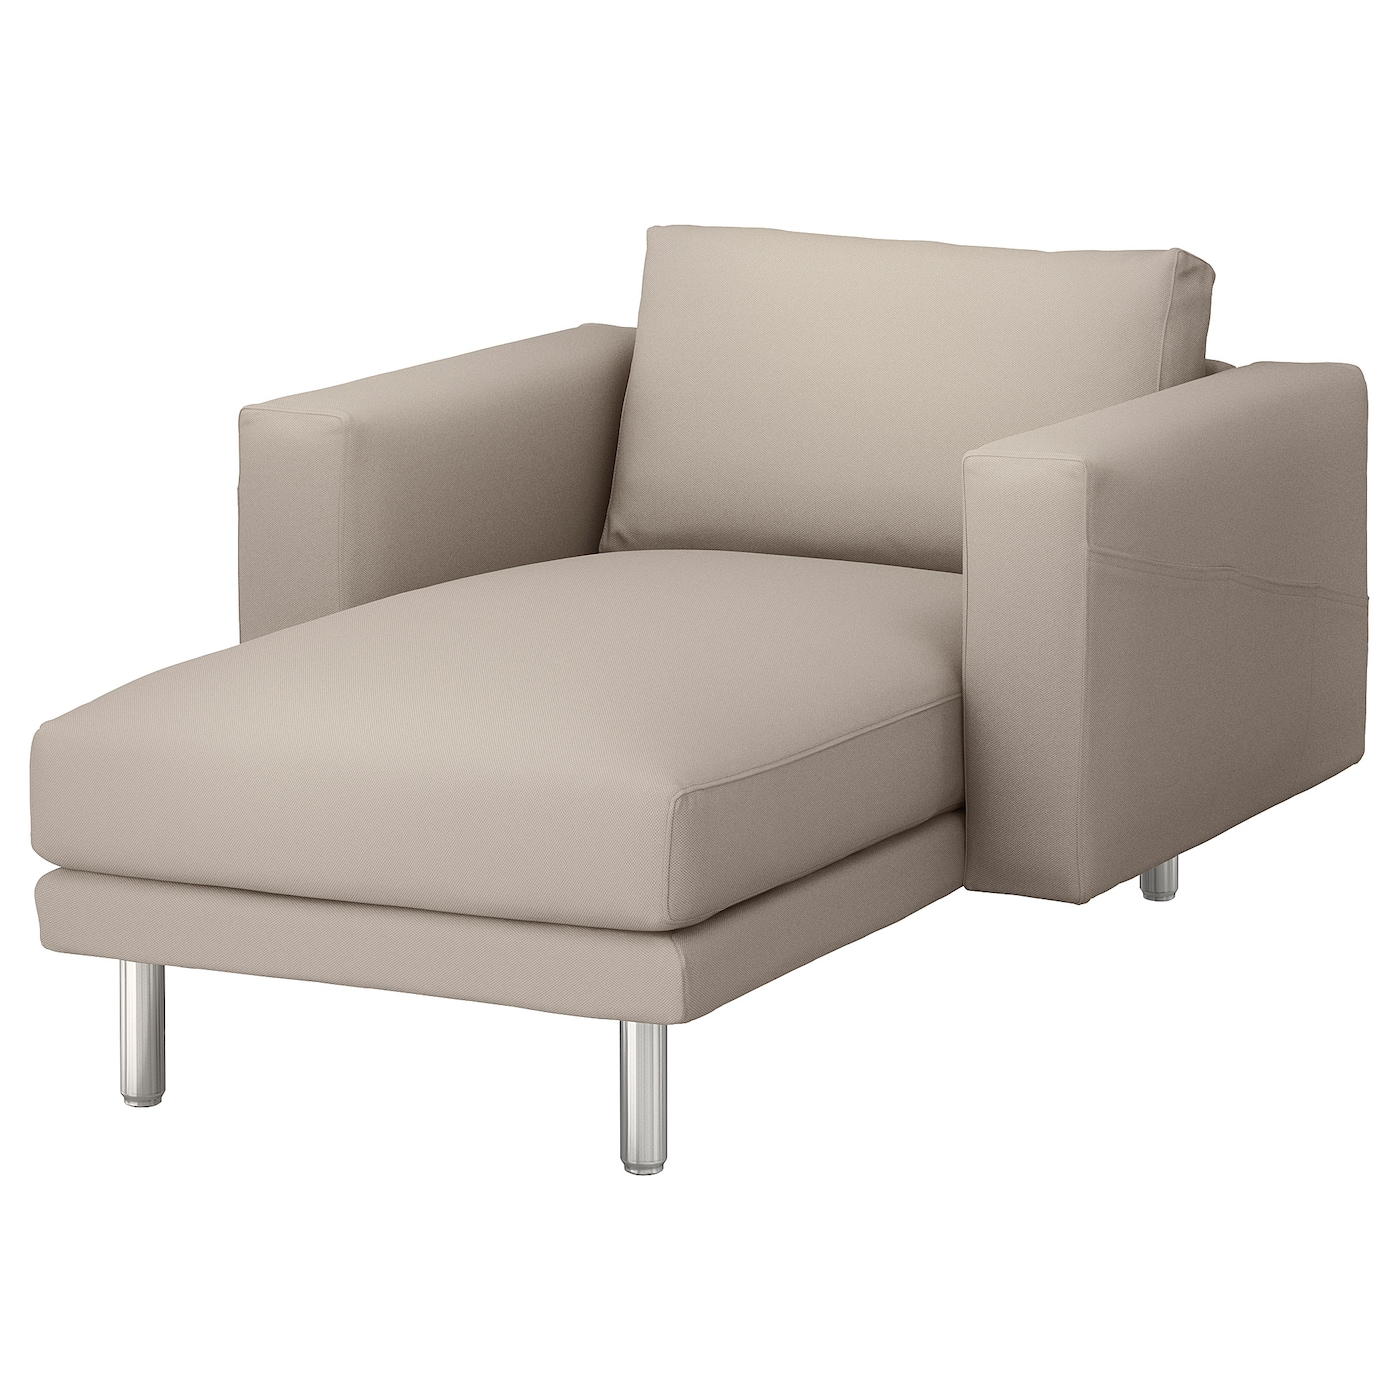 Chaise lounge sofa ikea images for Chaise longue jardin ikea